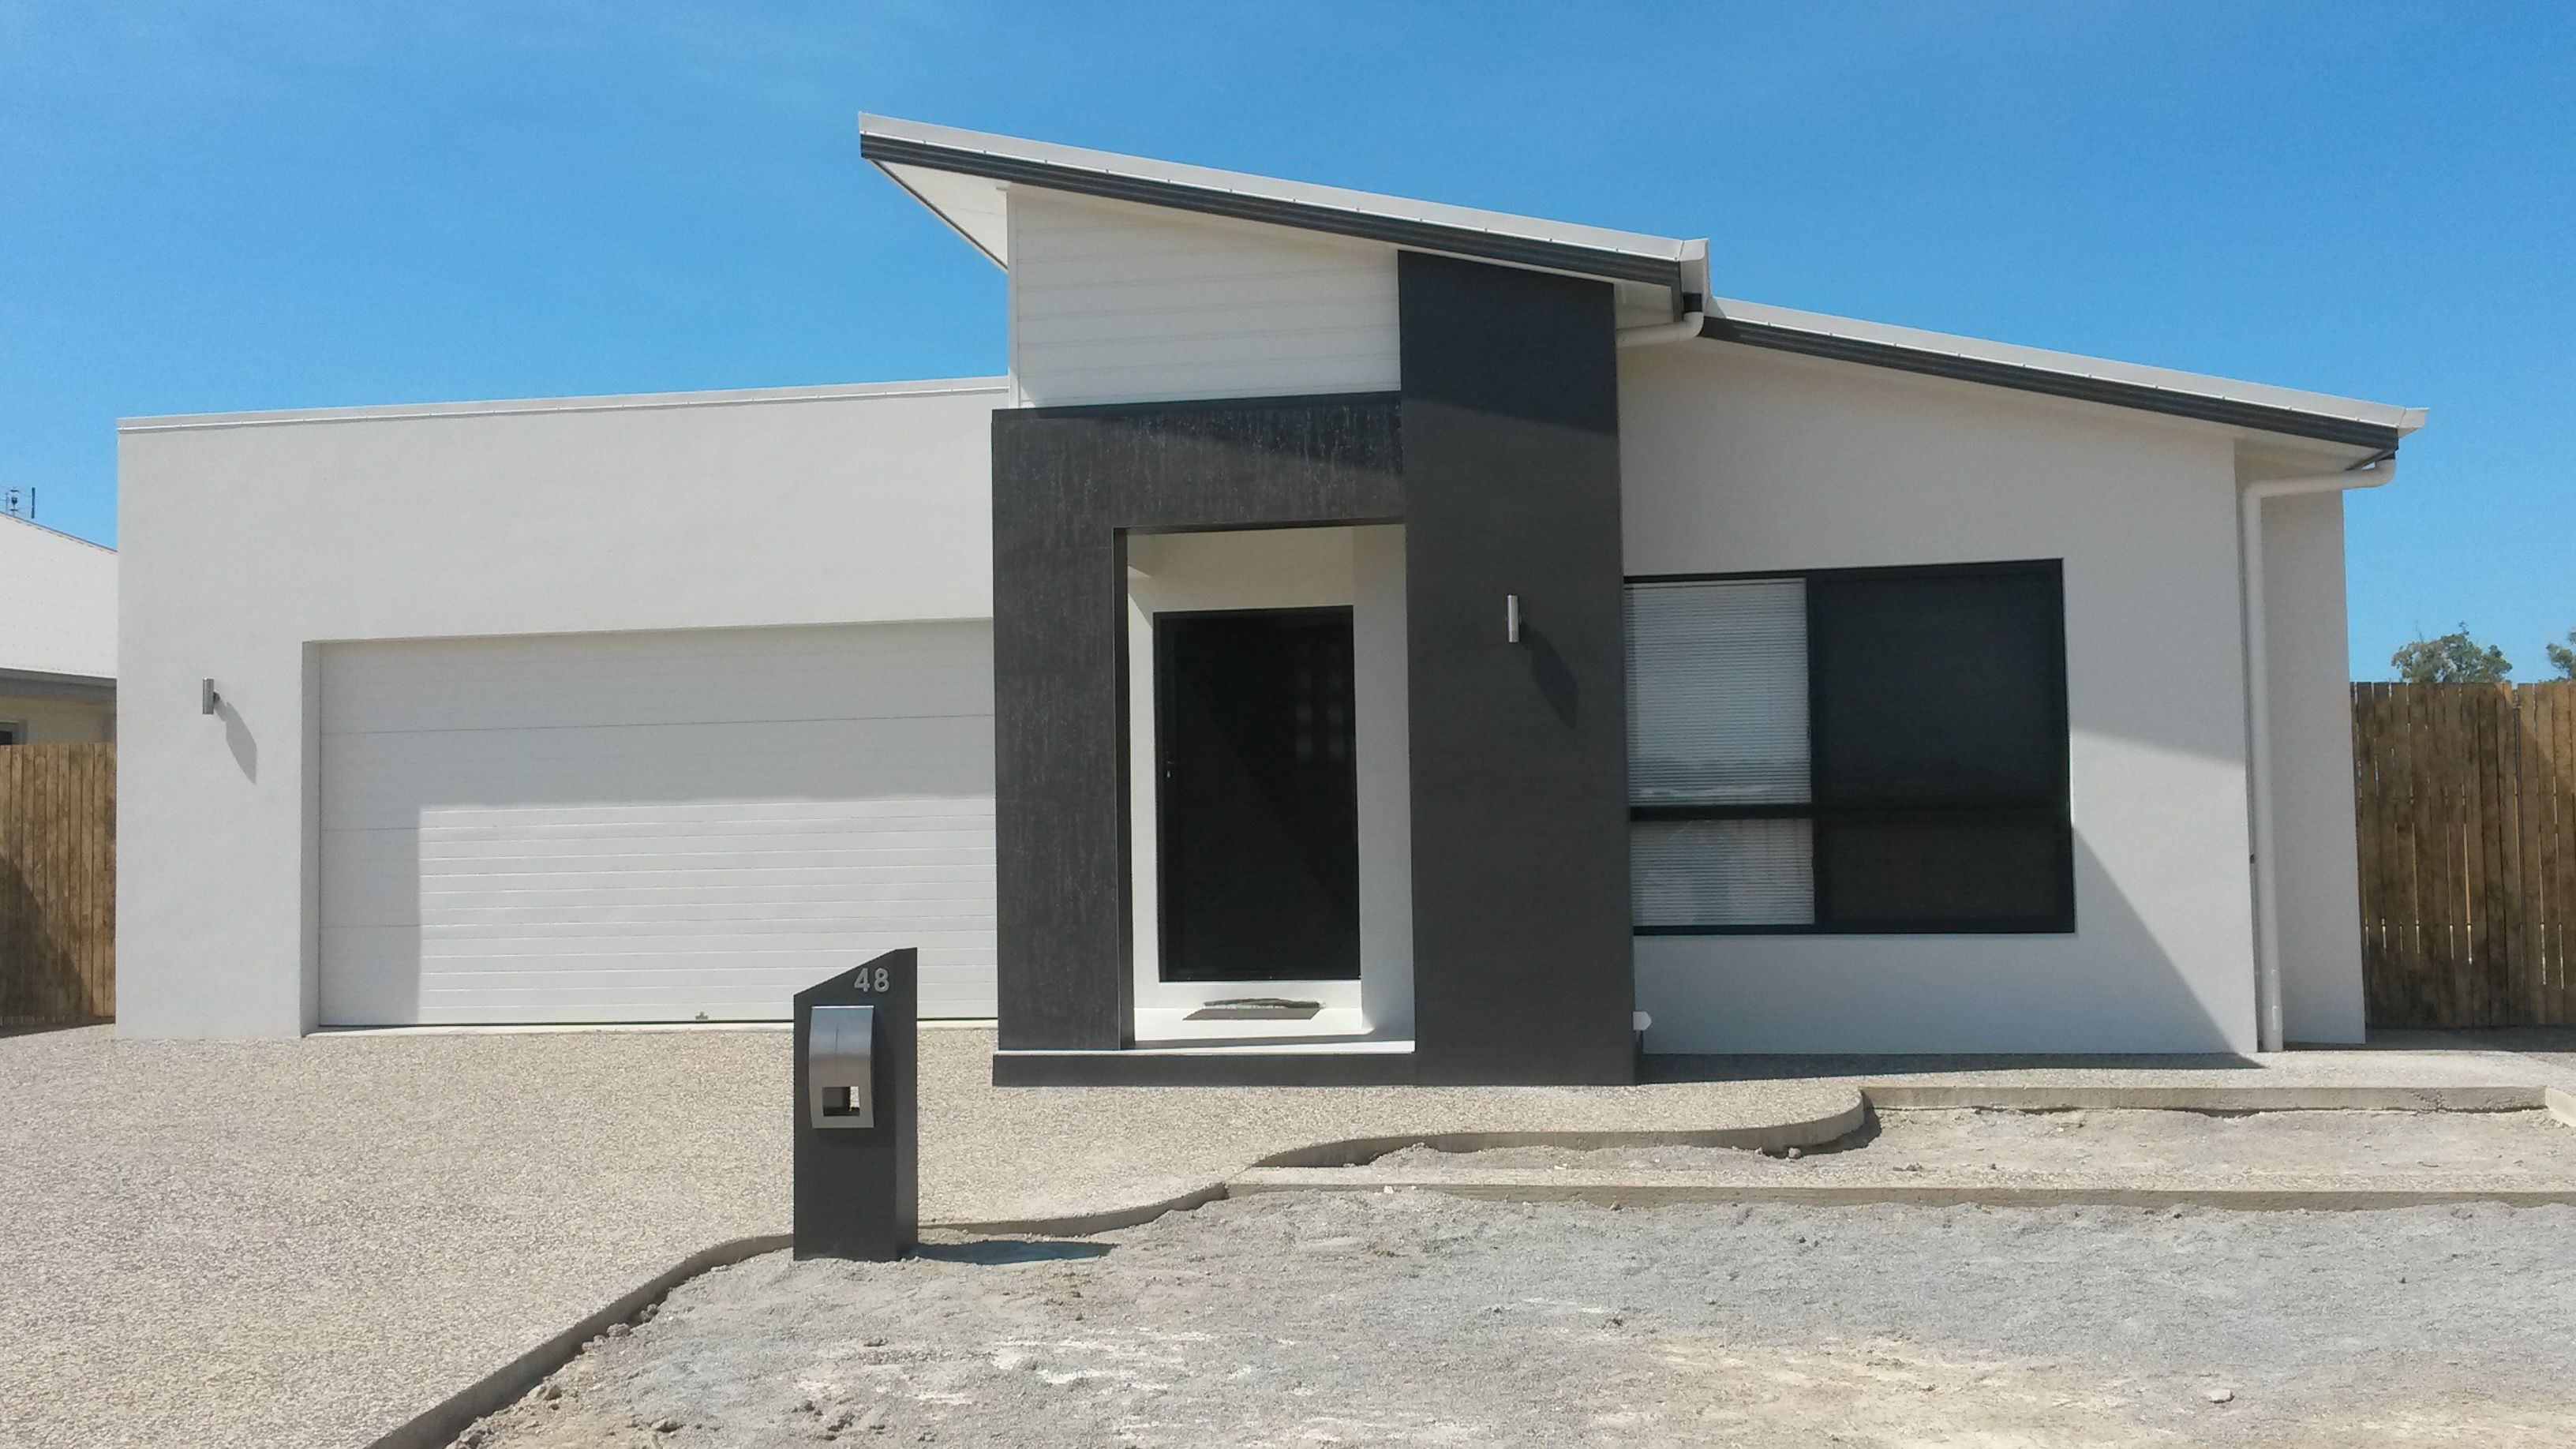 House Facade With Skillion Roof - Charcoal Grey And